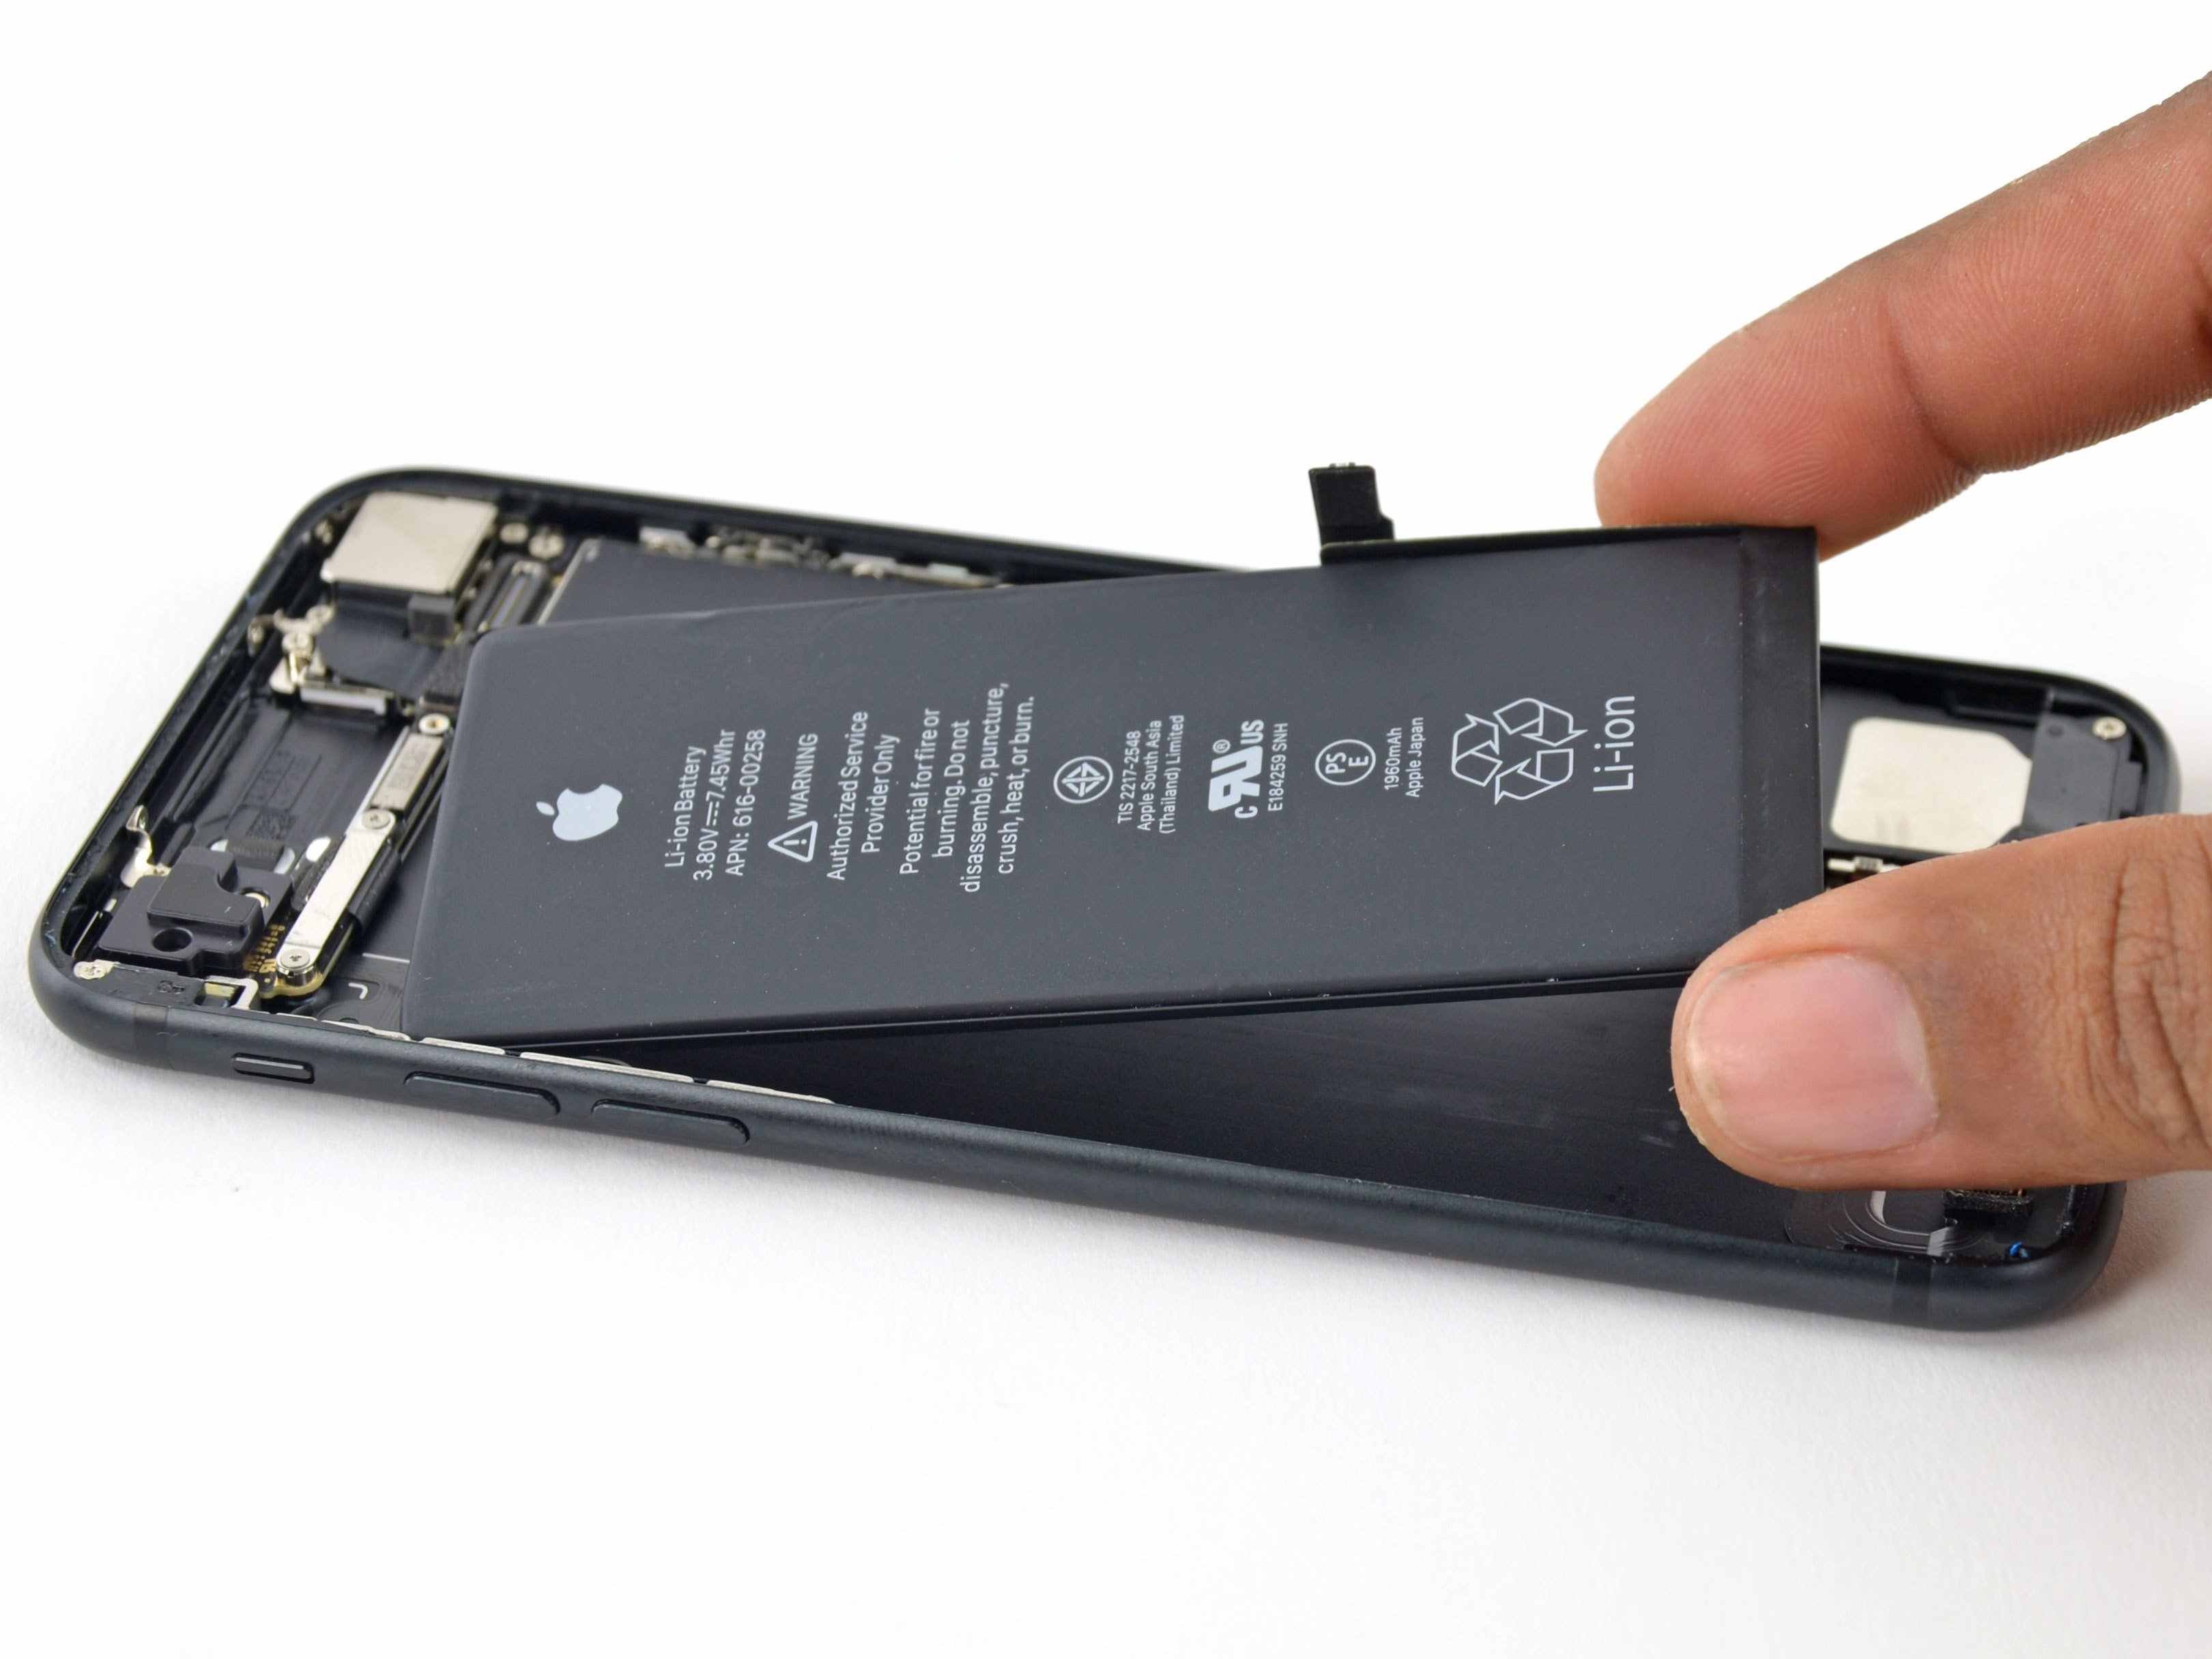 There Are Now More Than 60 Class Action Lawsuits Regarding iPhone Battery Slowdowns